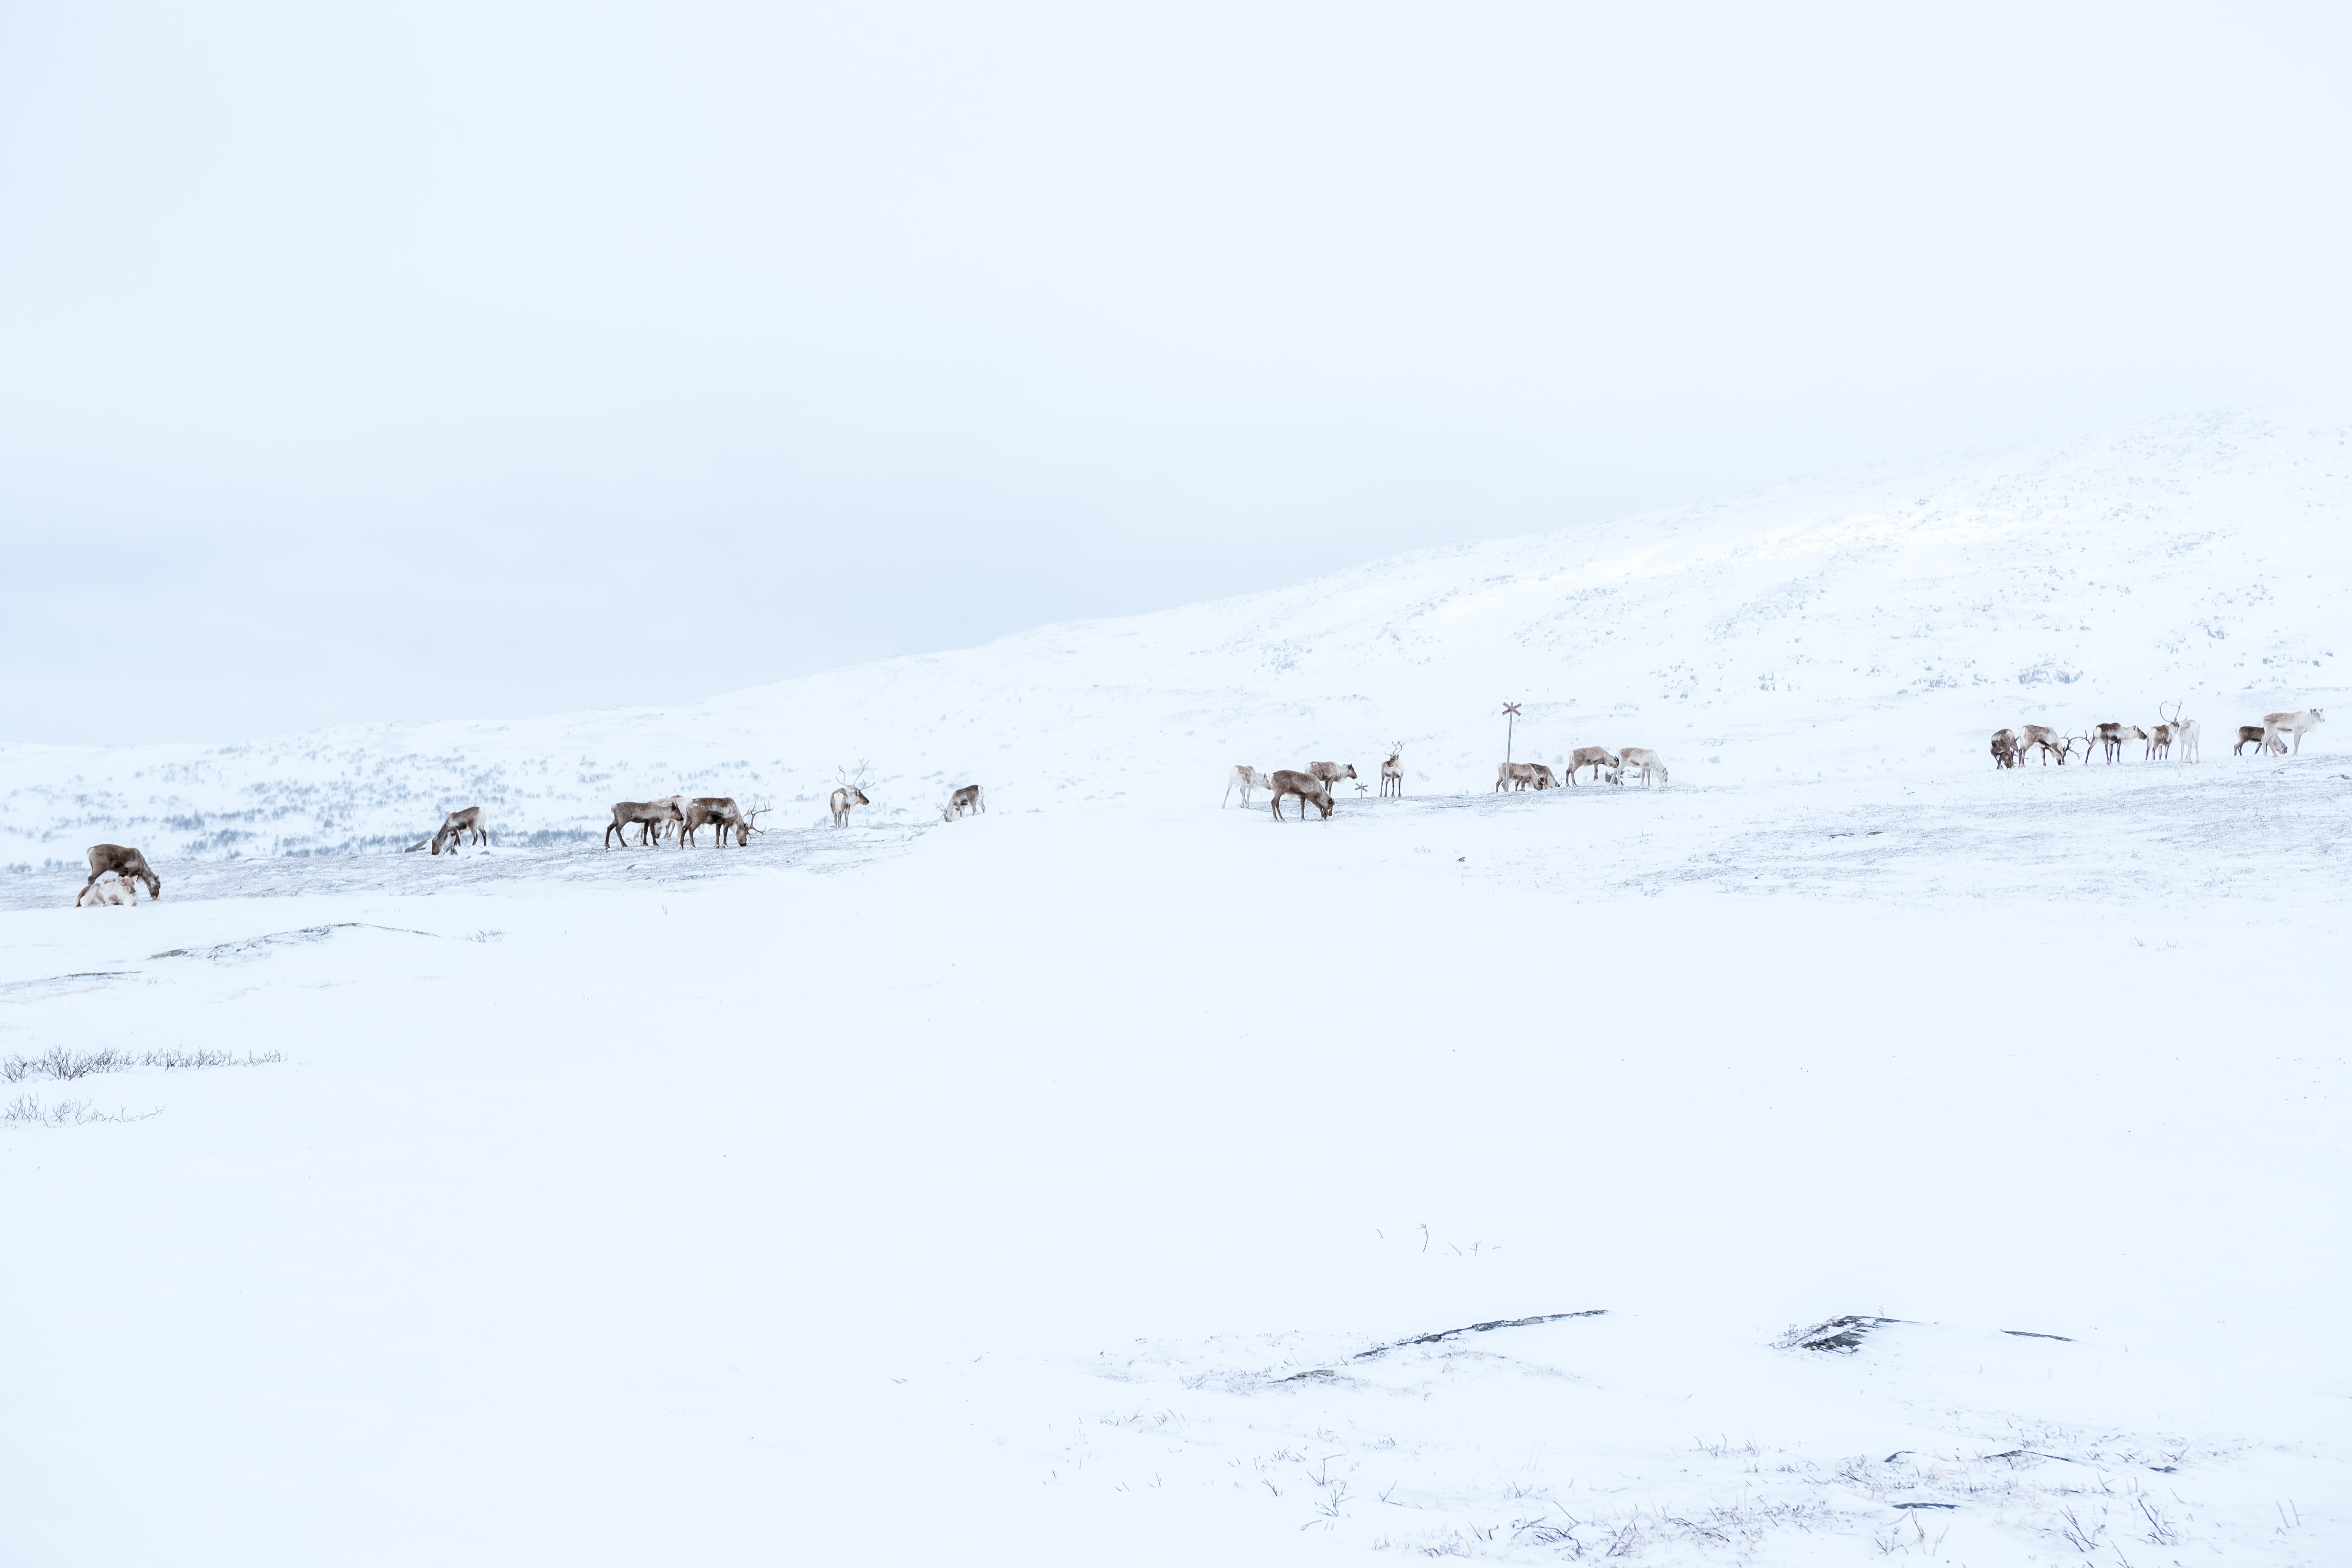 snow field with animals roaming